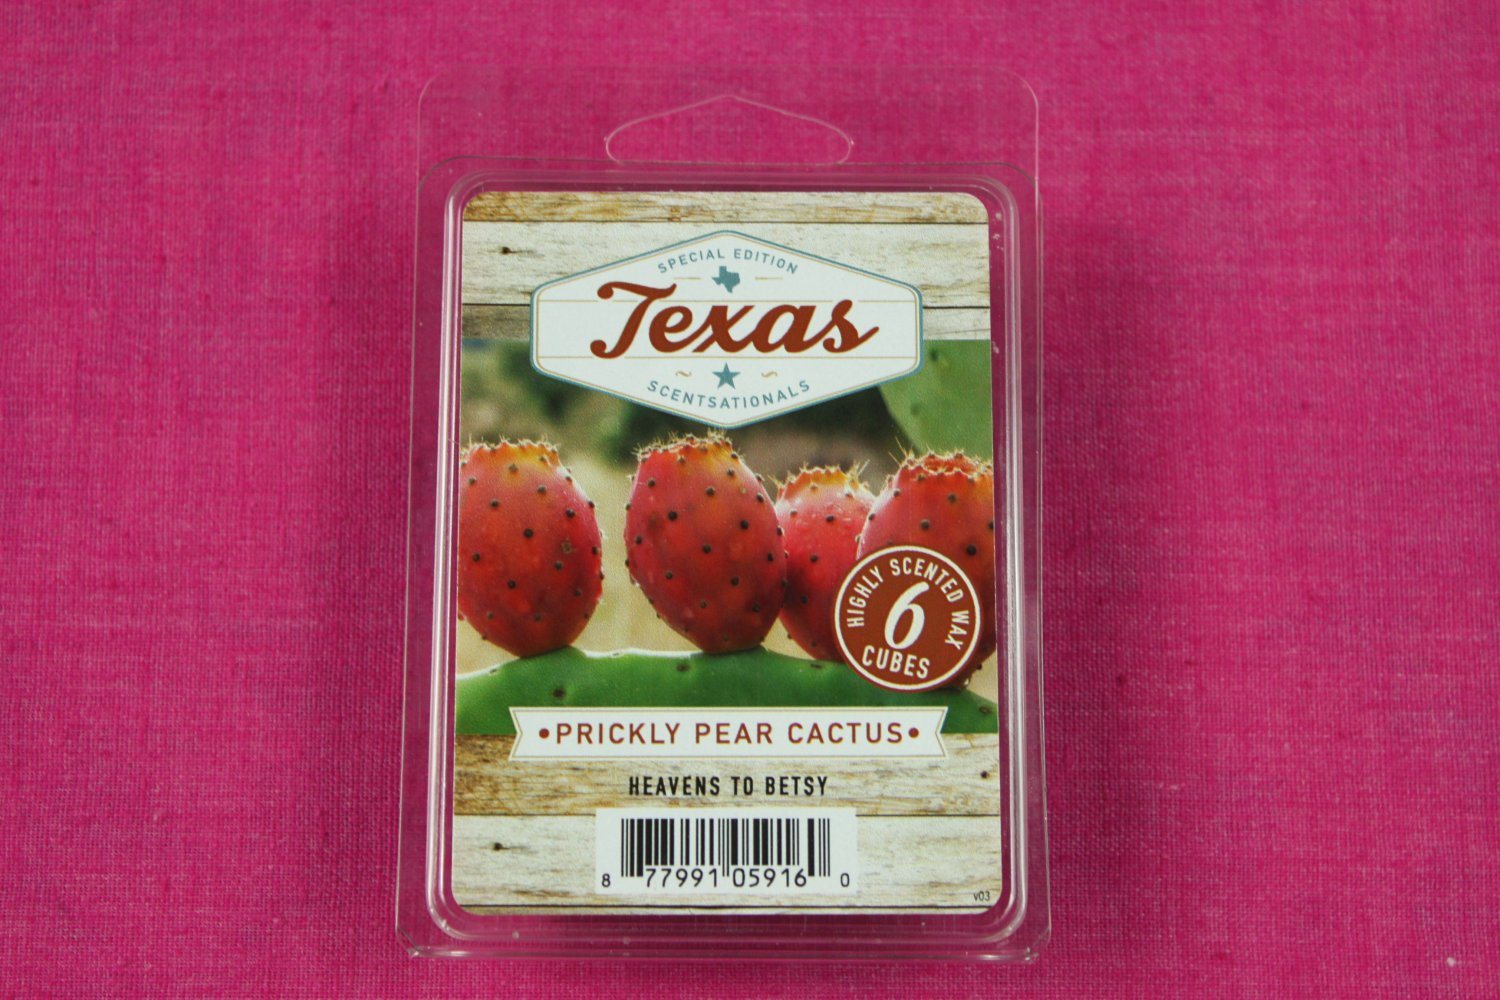 Scentsationals Prickly Pear Cactus Wax Melt Cubes Special Texas Edition